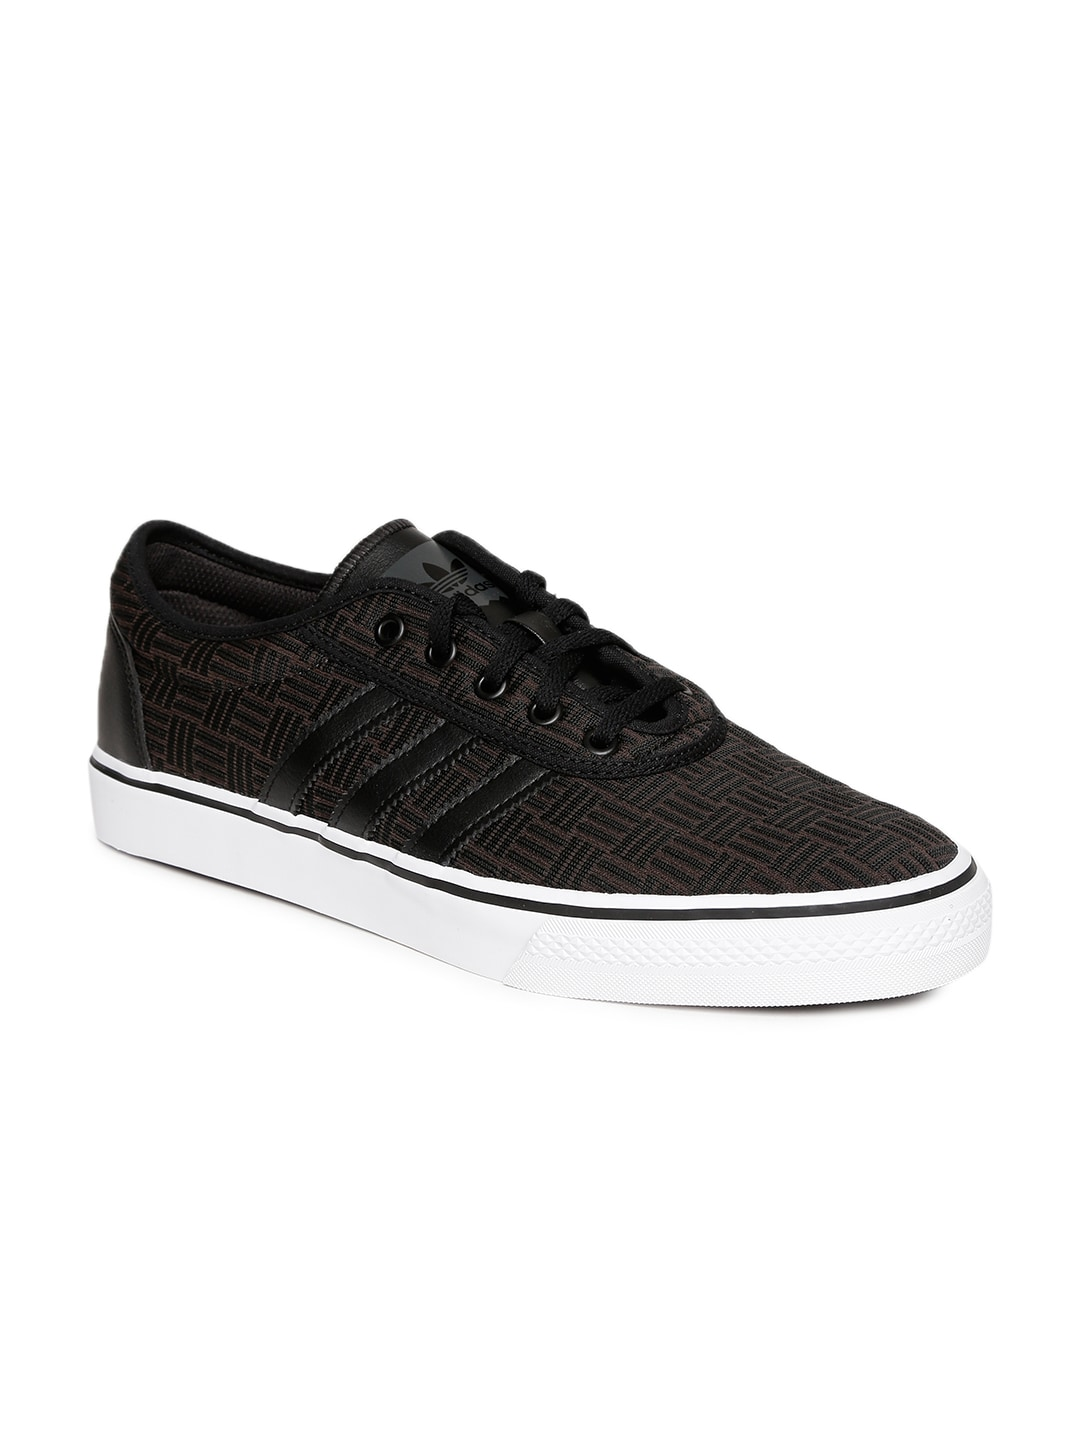 61f0060ce Adidas Casual Shoes